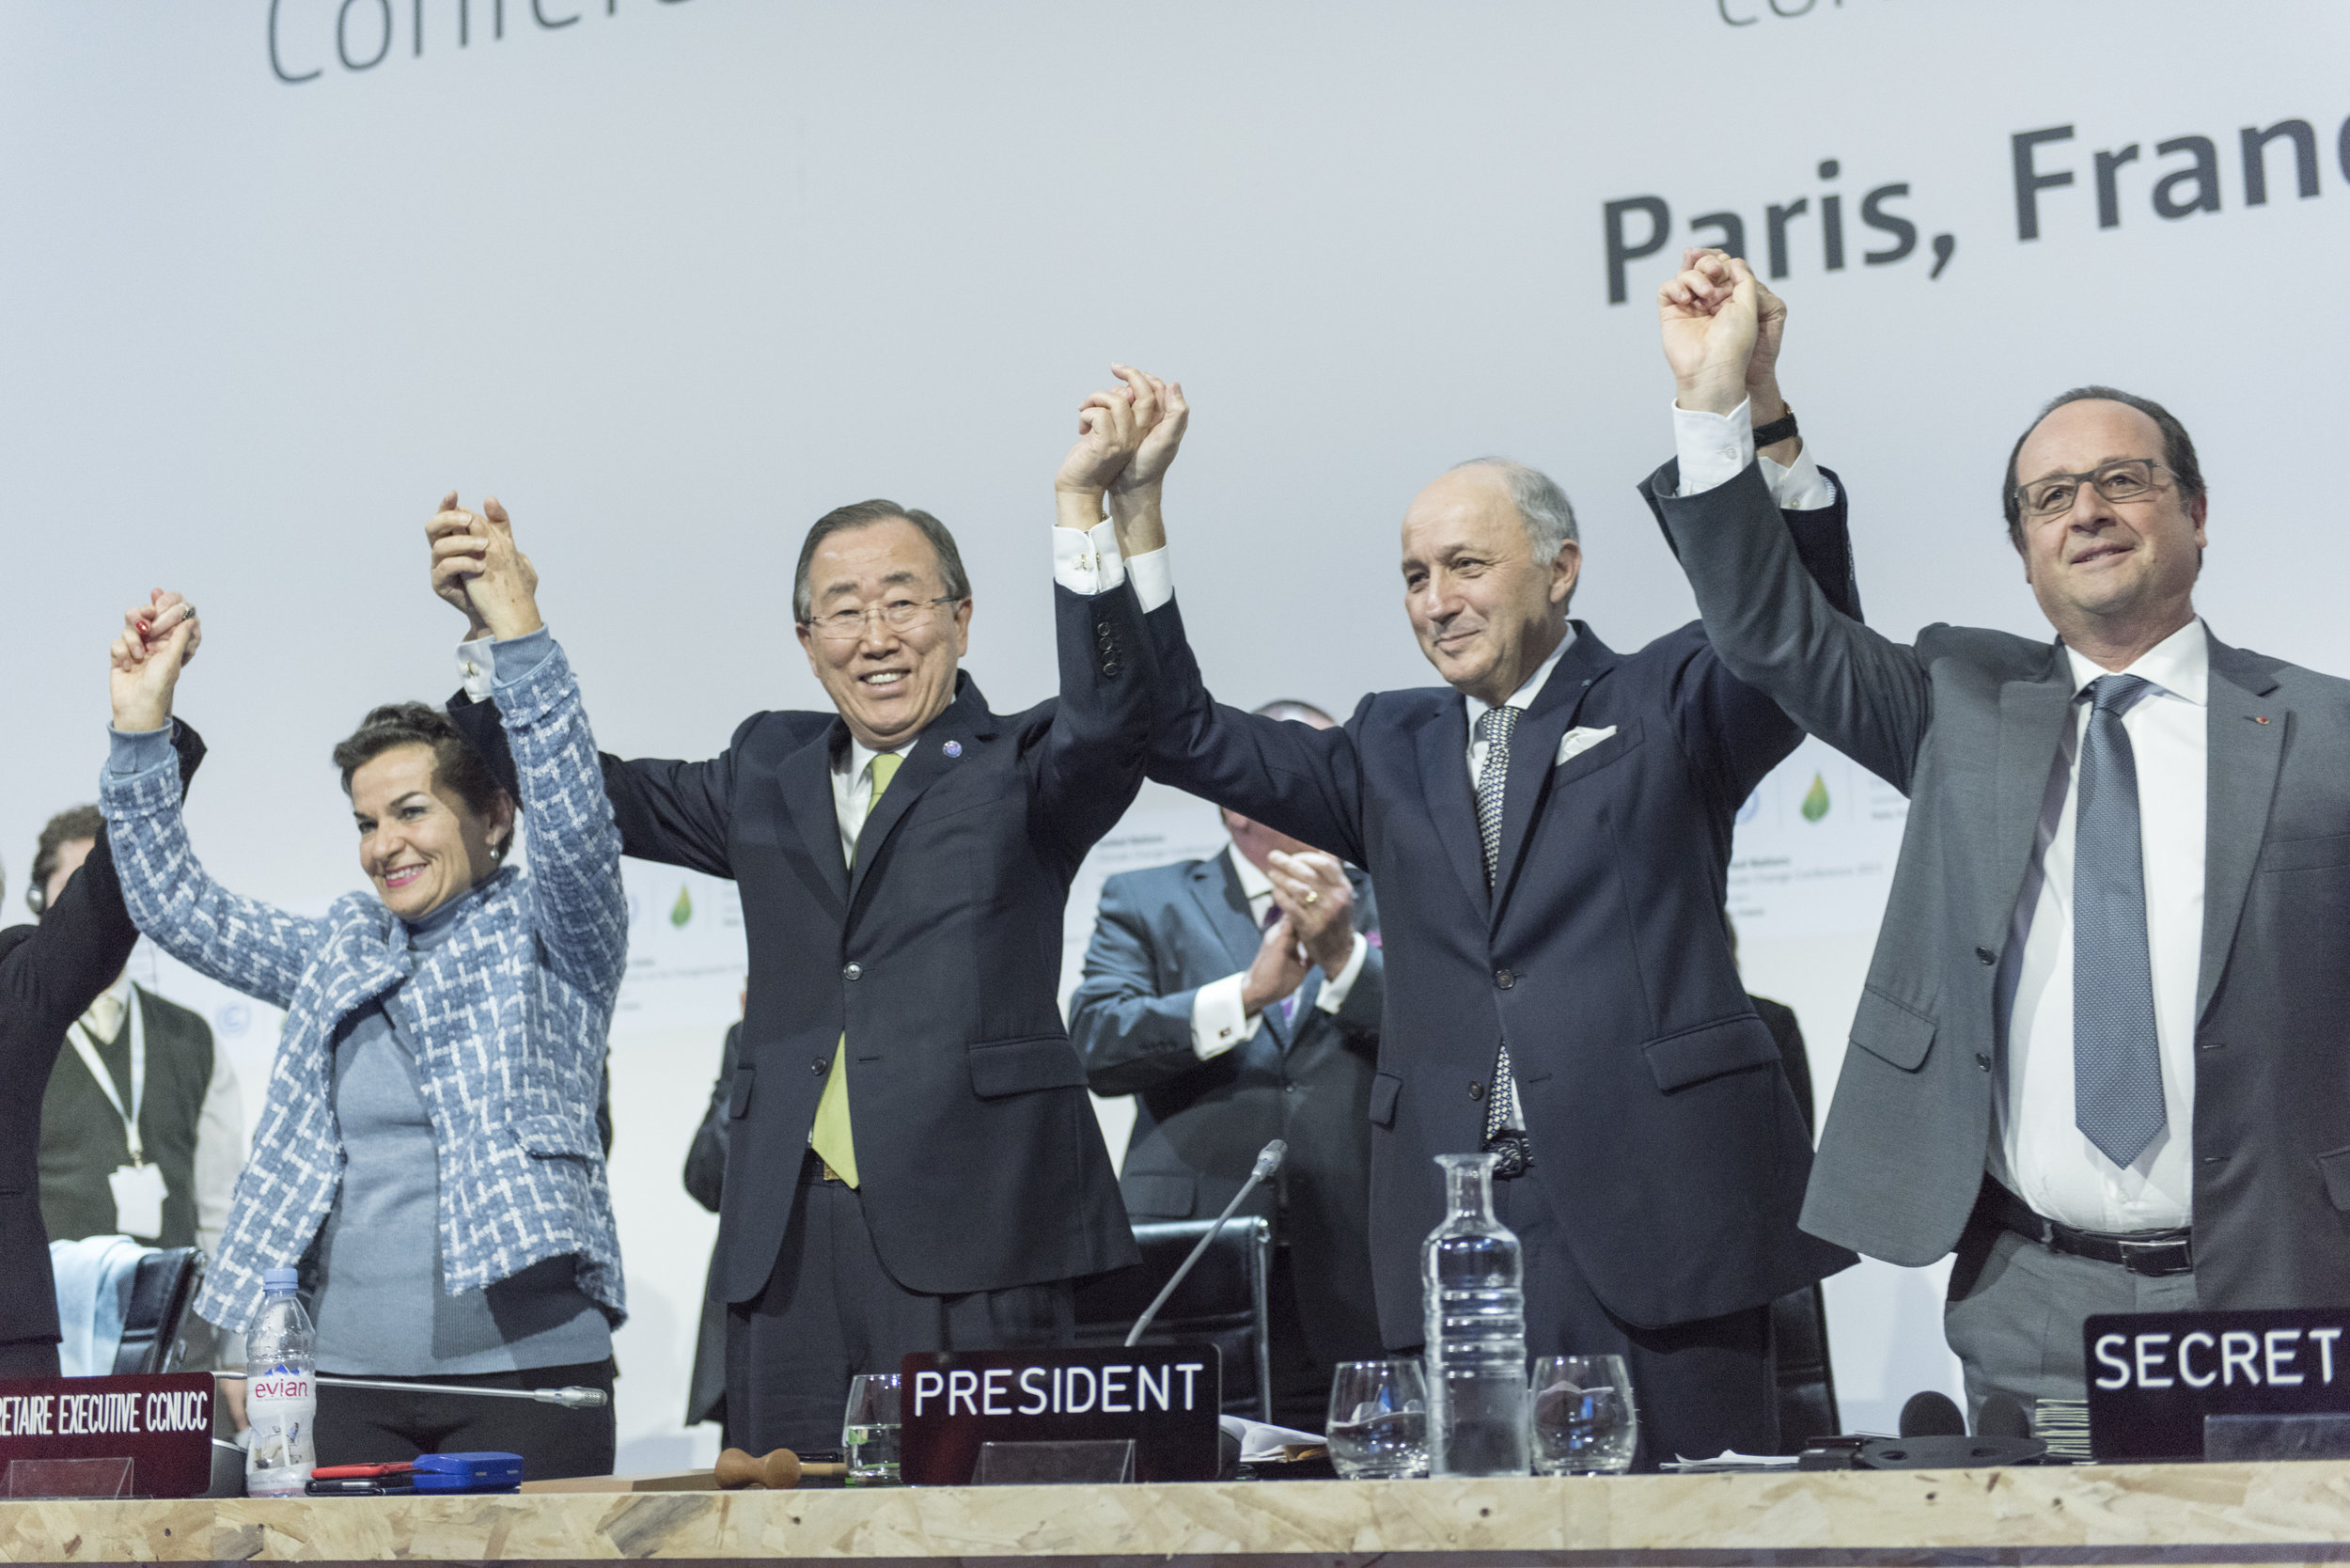 Celebration of historic adoption of Paris Agreement on climate change in 2015. Left to Right: Secretary-General Ban Ki-moon (second left); Christiana Figueres (left), Executive Secretary of the UN Framework Convention on Climate Change (UNFCCC); Laurent Fabius (second right), Minister for Foreign Affairs of France and President of the UN Climate Change Conference in Paris (COP21) and François Hollande (right), President of France celebrate after the historic adoption of Paris Agreement on climate change. Photo by: UN Photo/Mark Garten/Flickr Creative Commons